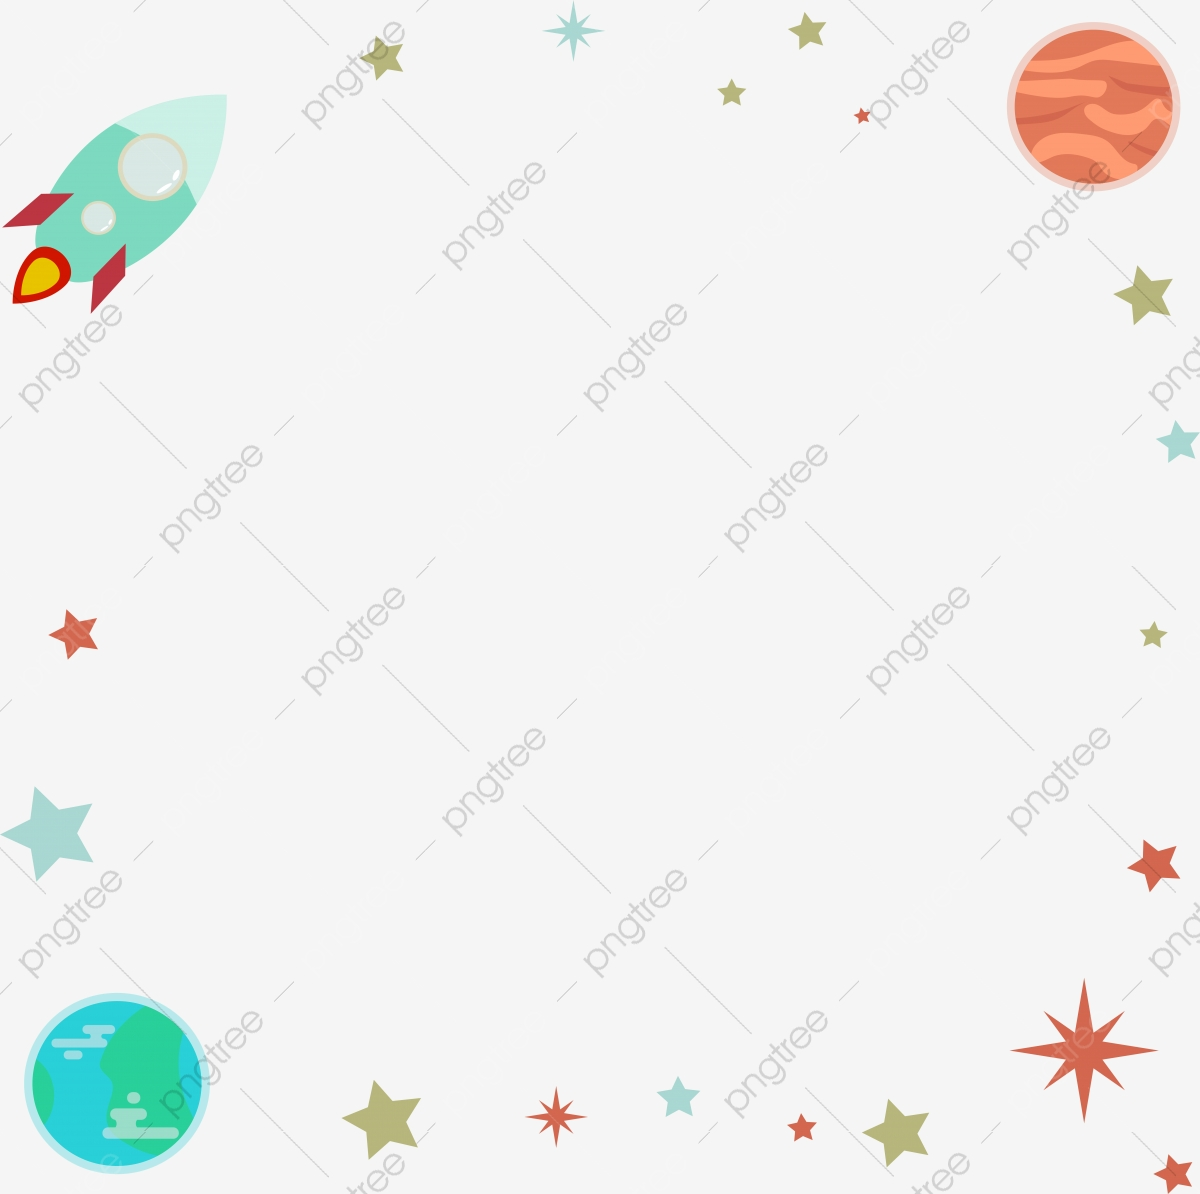 World Aviation Starry Sky Planet Rocket Cartoon Border World Aviation Day Starry Sky Planet Png Transparent Clipart Image And Psd File For Free Download